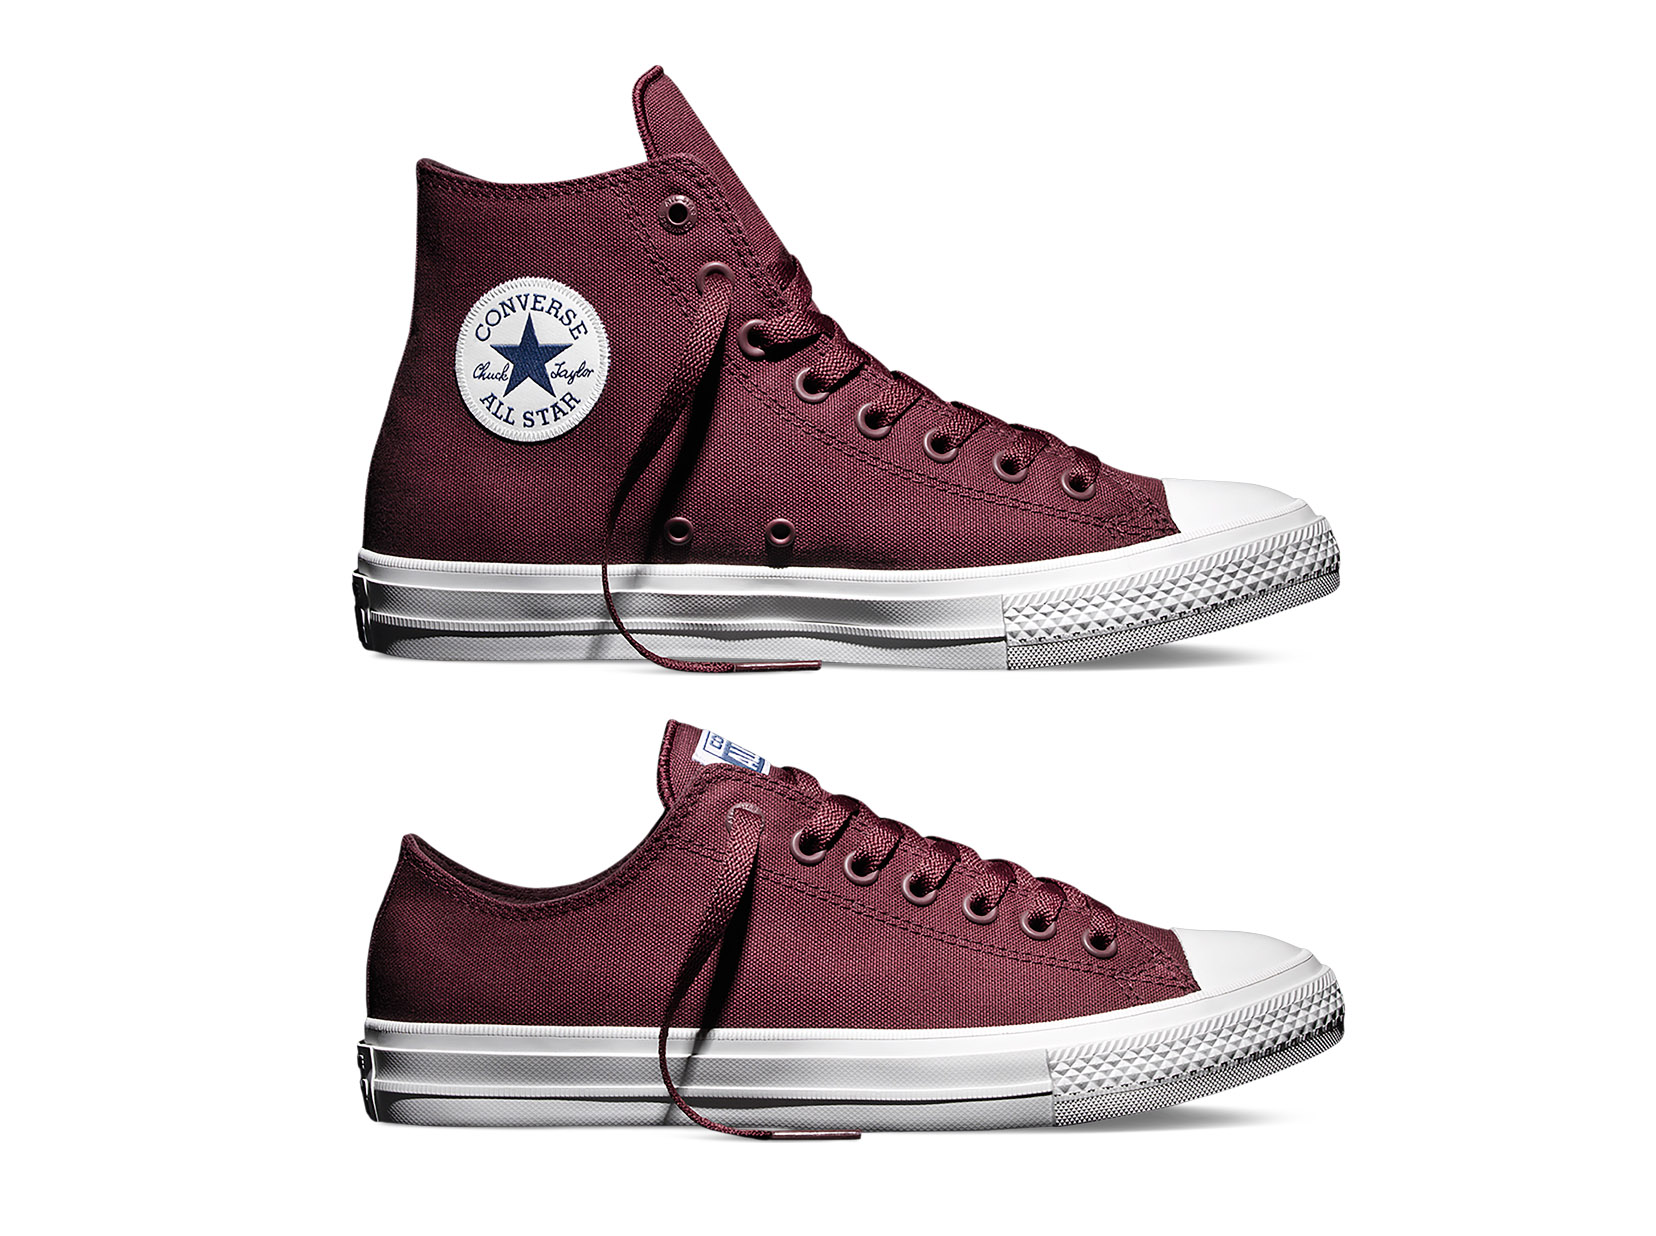 Converse Chuck Taylor All star Bordeaux Unisex Hi Tops